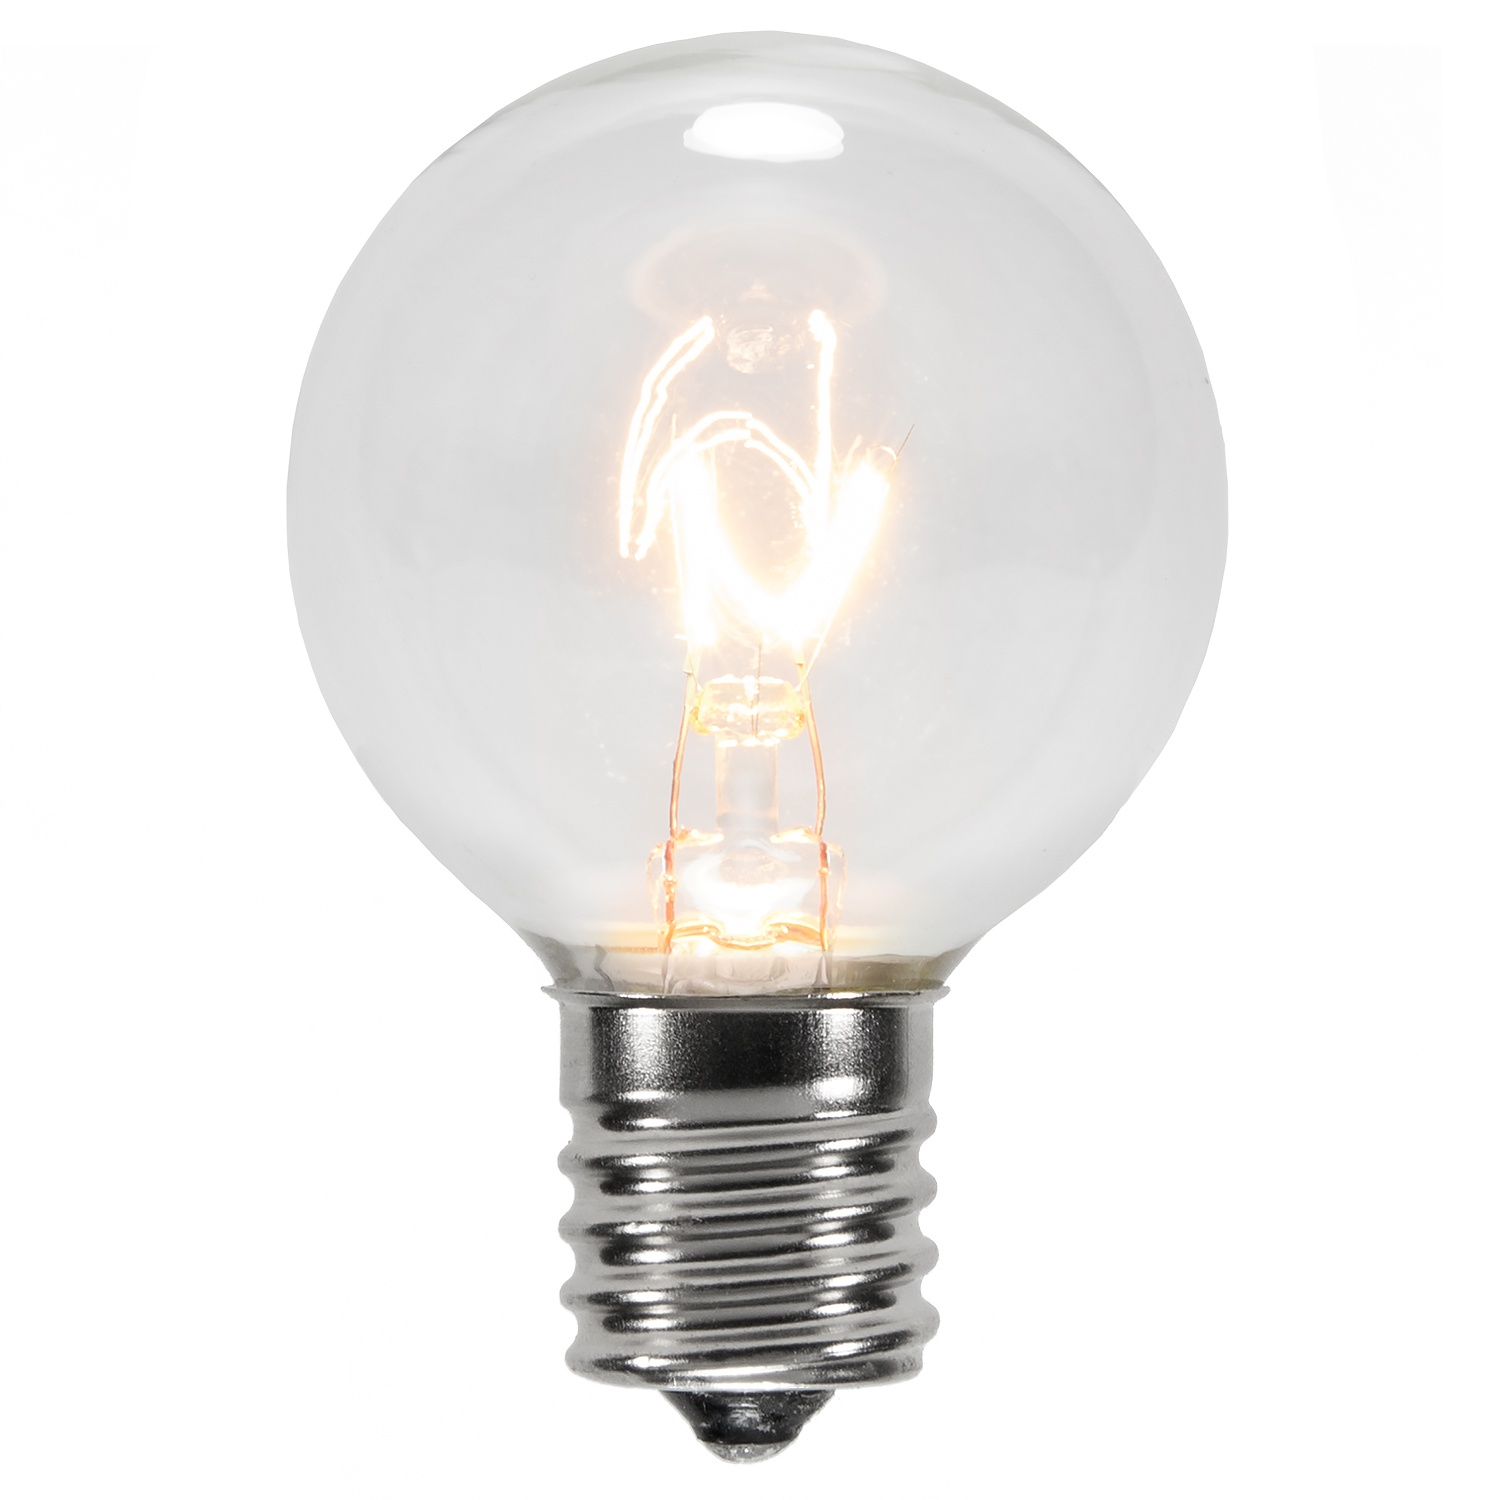 name requesttype dispatcher category appliances store light image ge lightbulbs flat model bulb parts